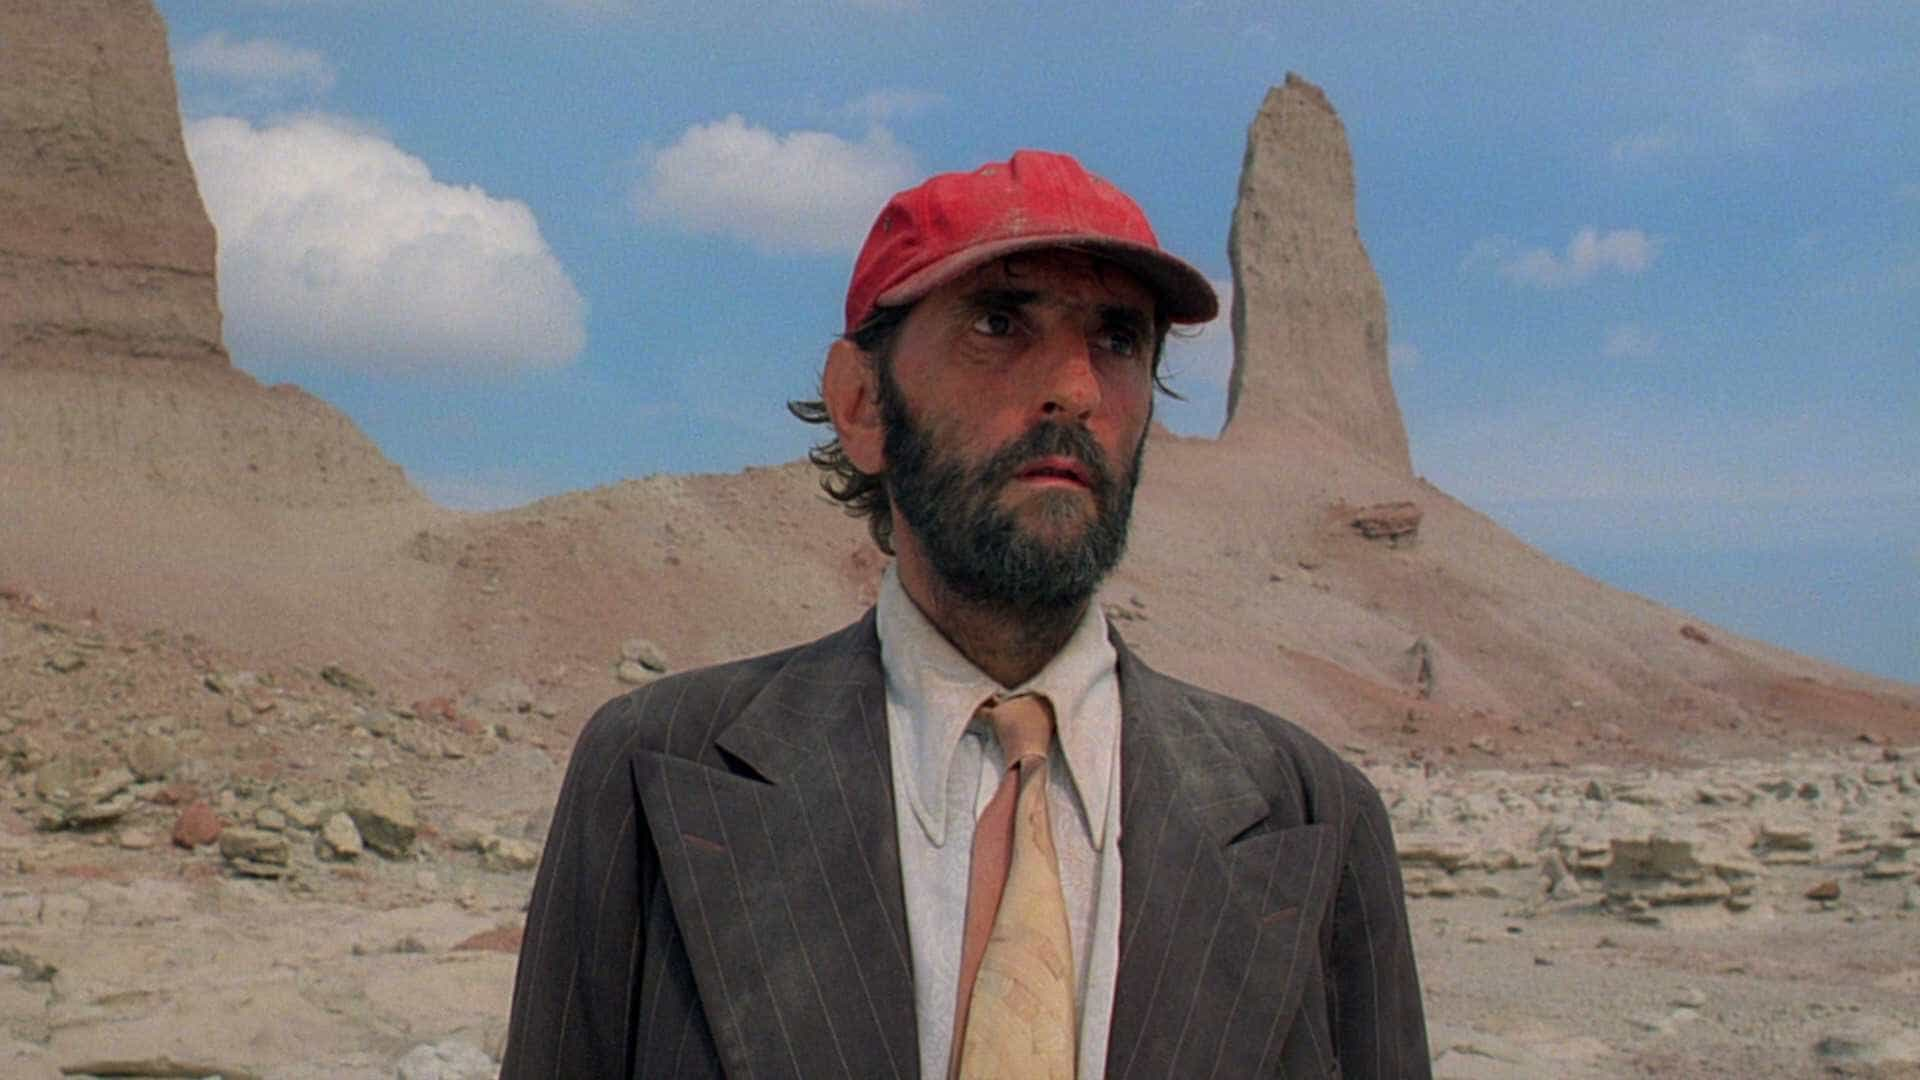 Morre Harry Dean Stanton, ator de 'Paris, Texas' e 'Twin Peaks'